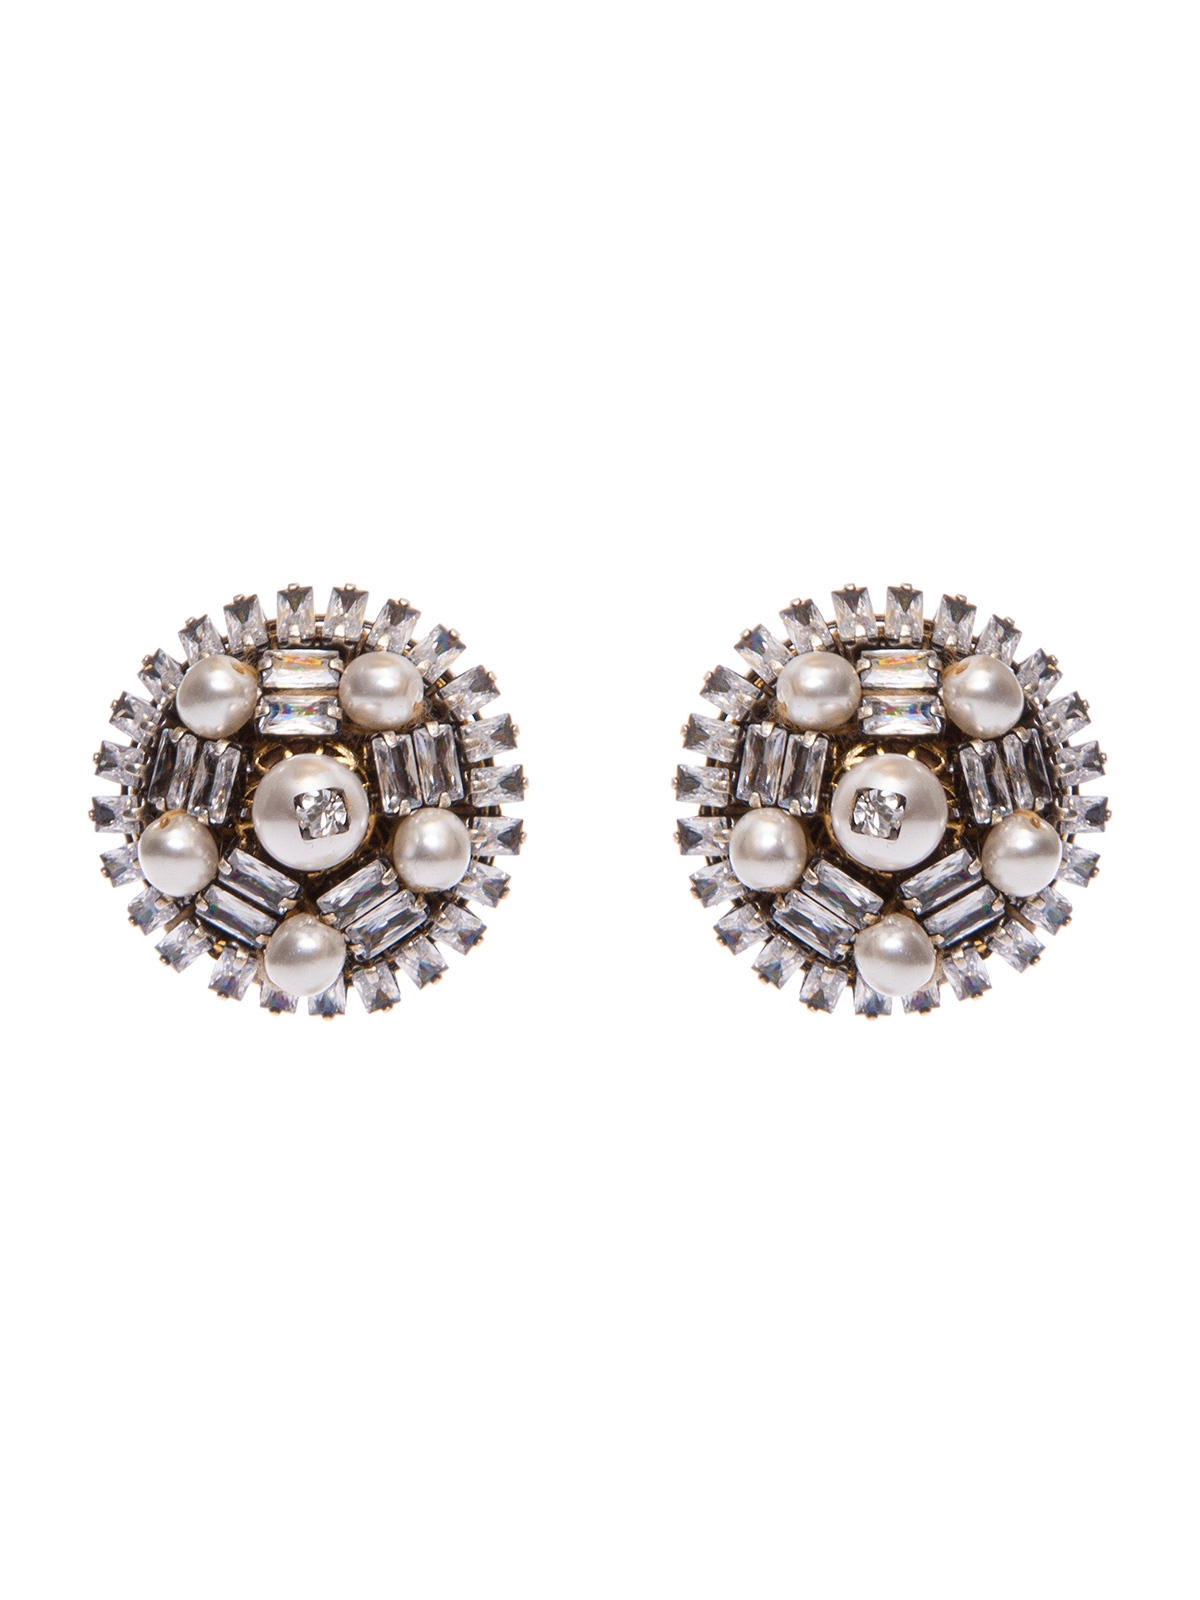 Button earrings embroidered with stones and pearls